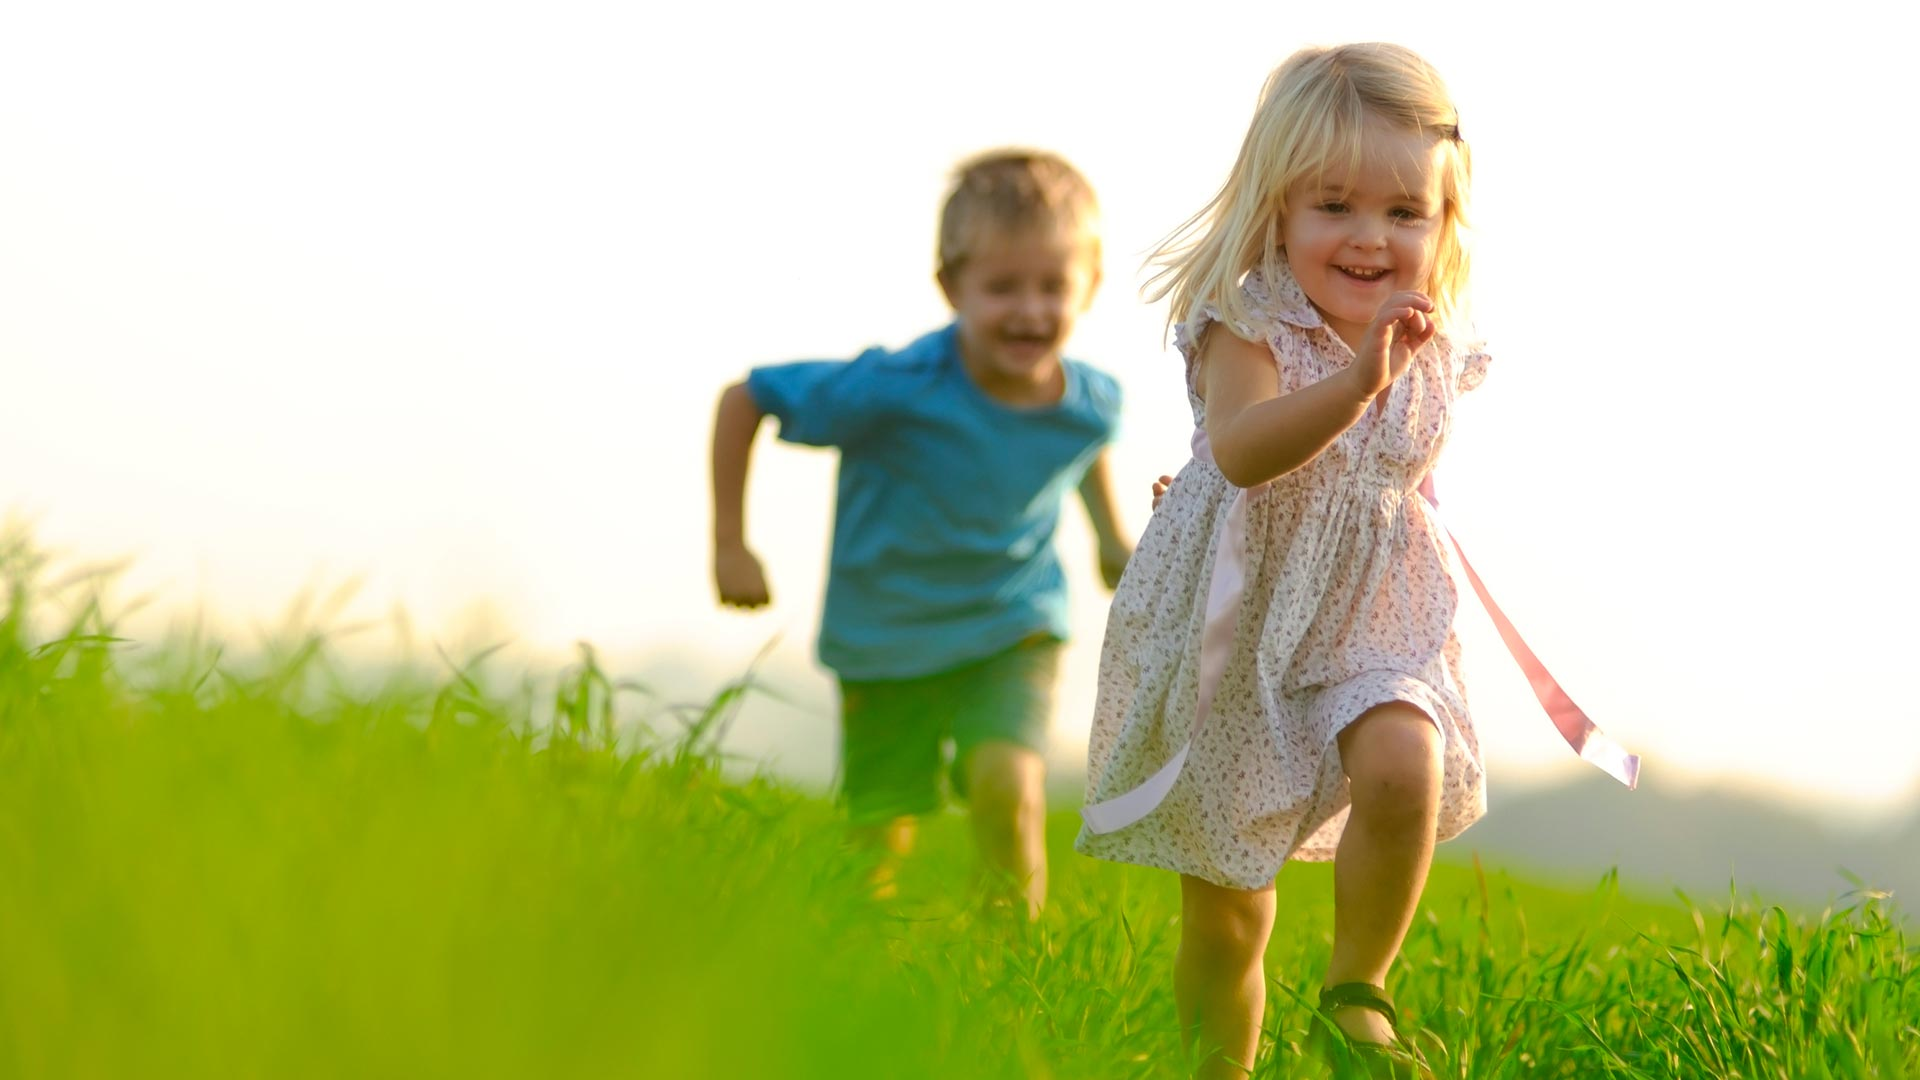 hd wallpaper kids chasing   Background Wallpapers for your 1920x1080